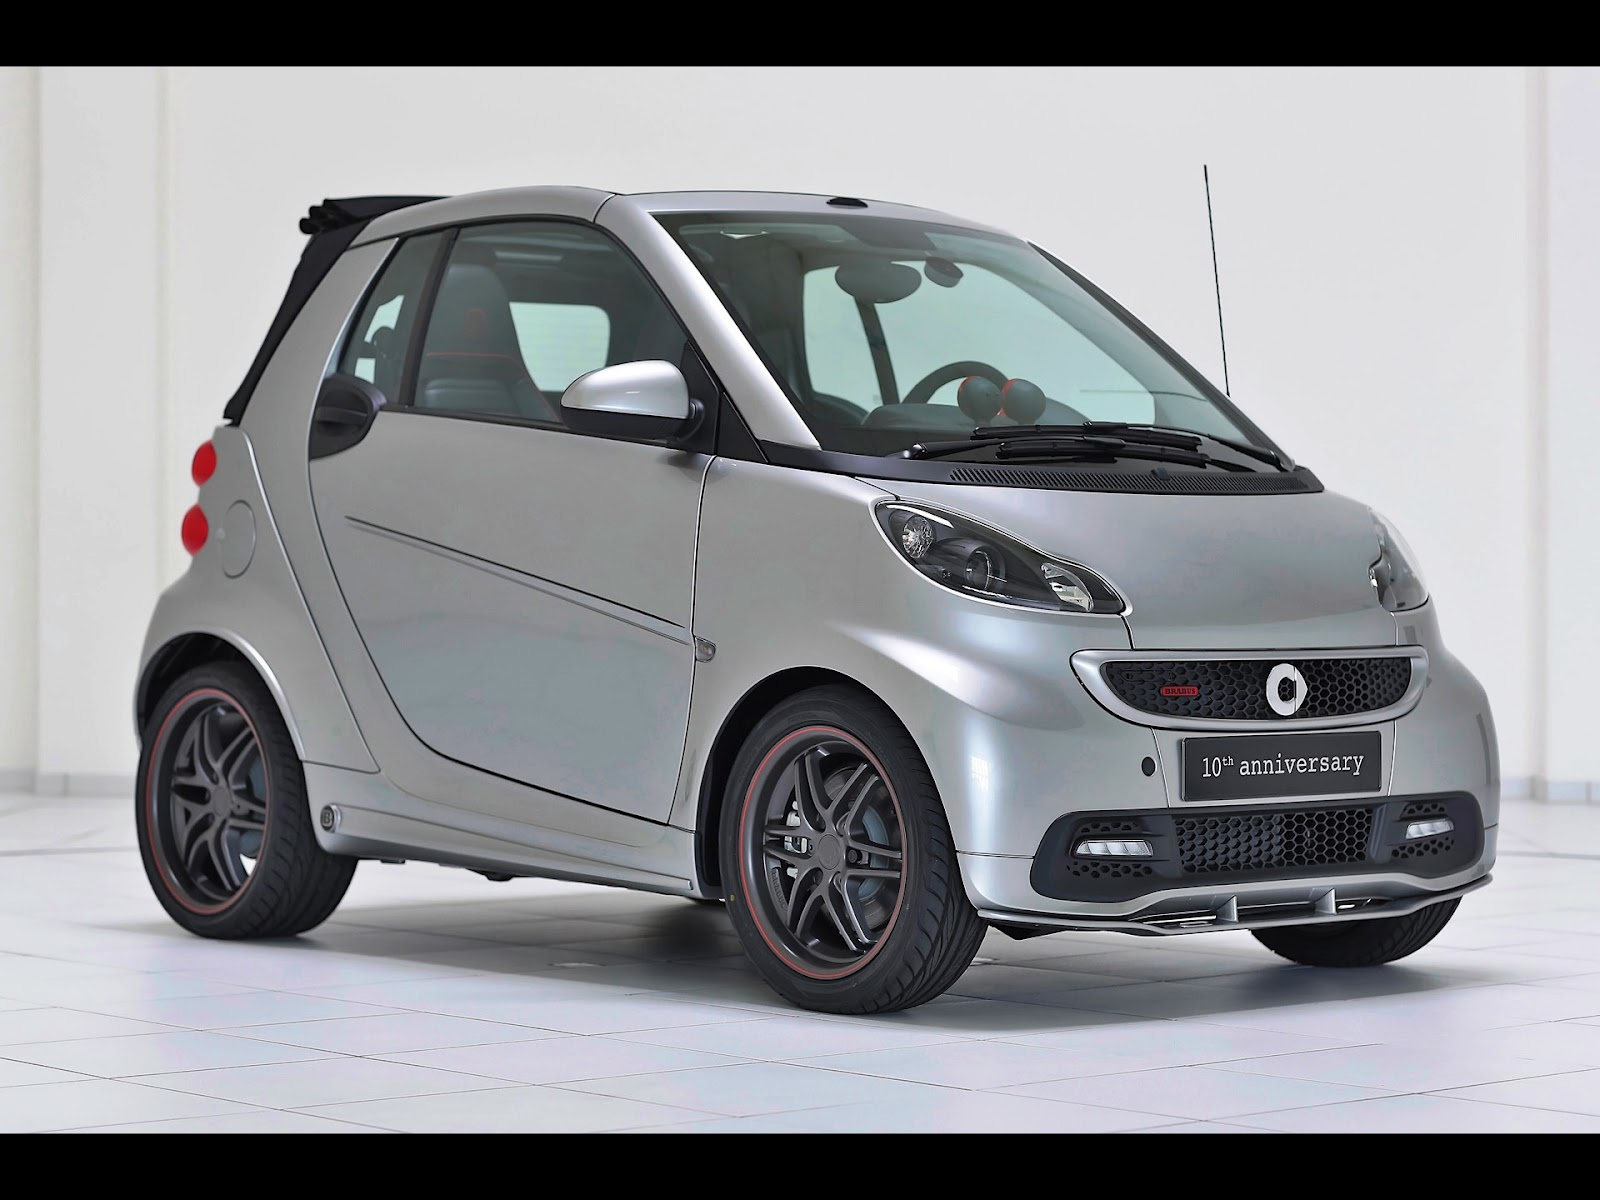 2012 brabus smart 10th anniversary edition news hot car. Black Bedroom Furniture Sets. Home Design Ideas